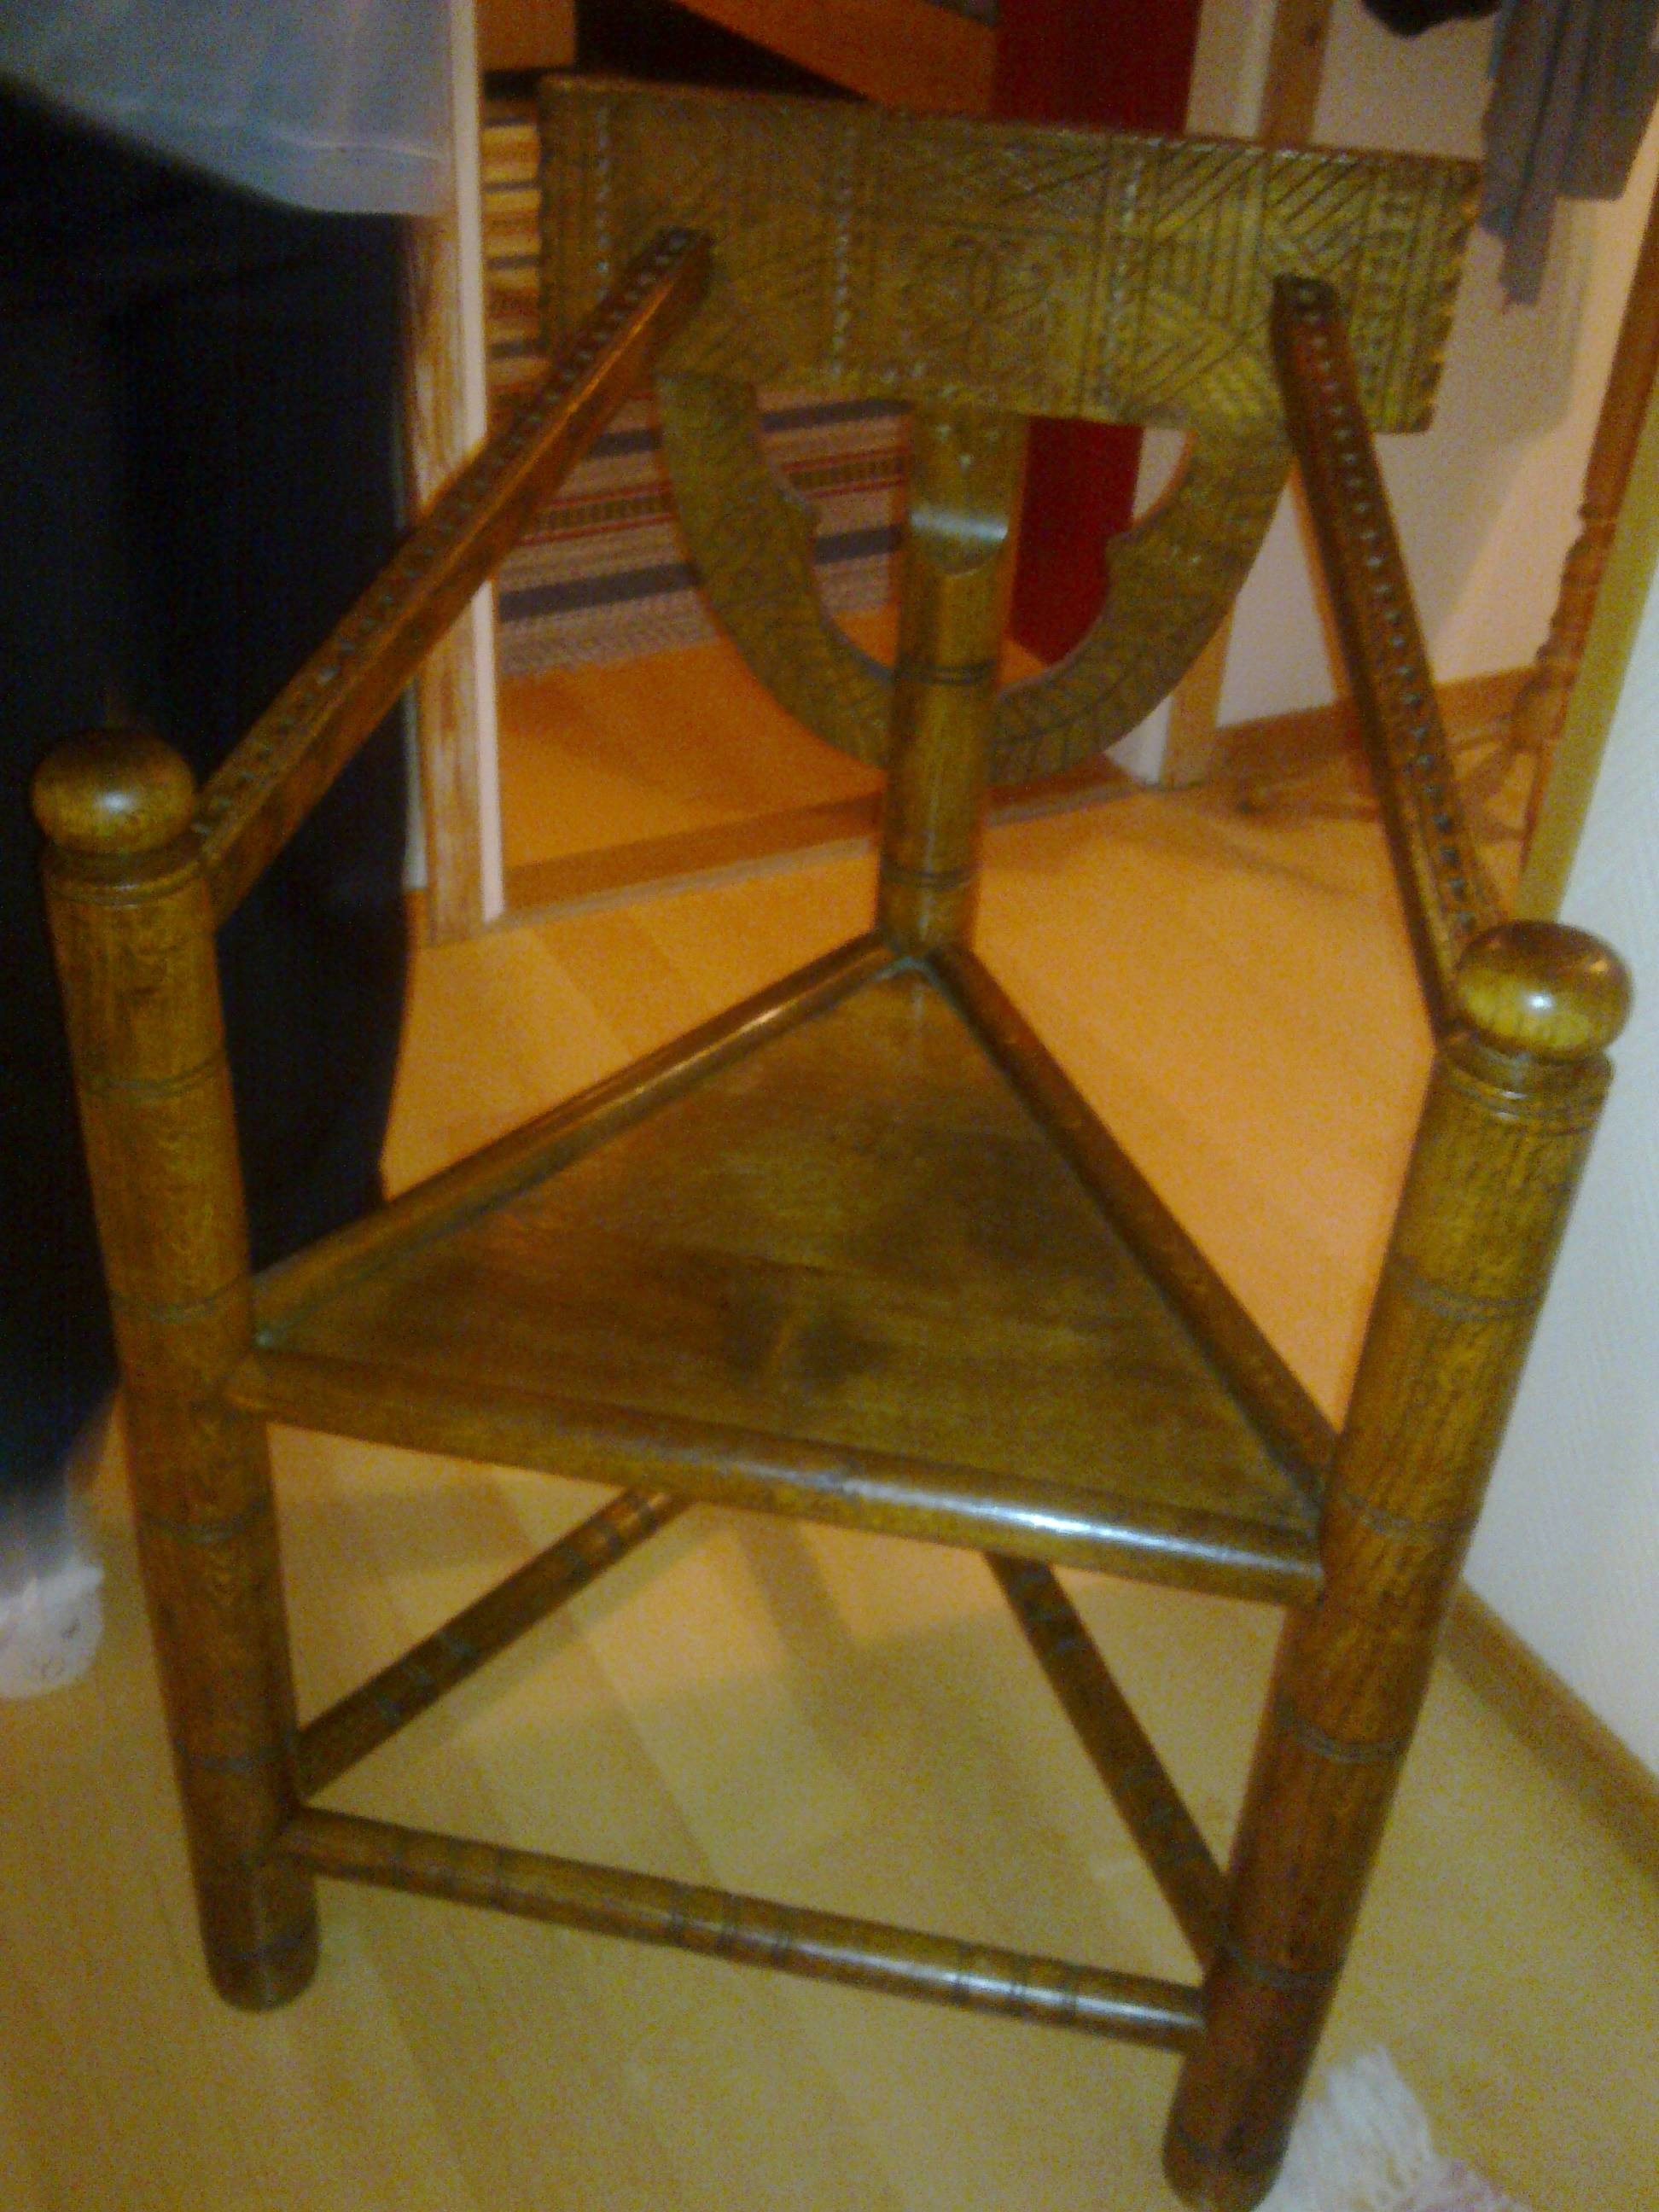 The Busted Chair | Tom's Workbench Pertaining To Monk Chairs (View 16 of 30)